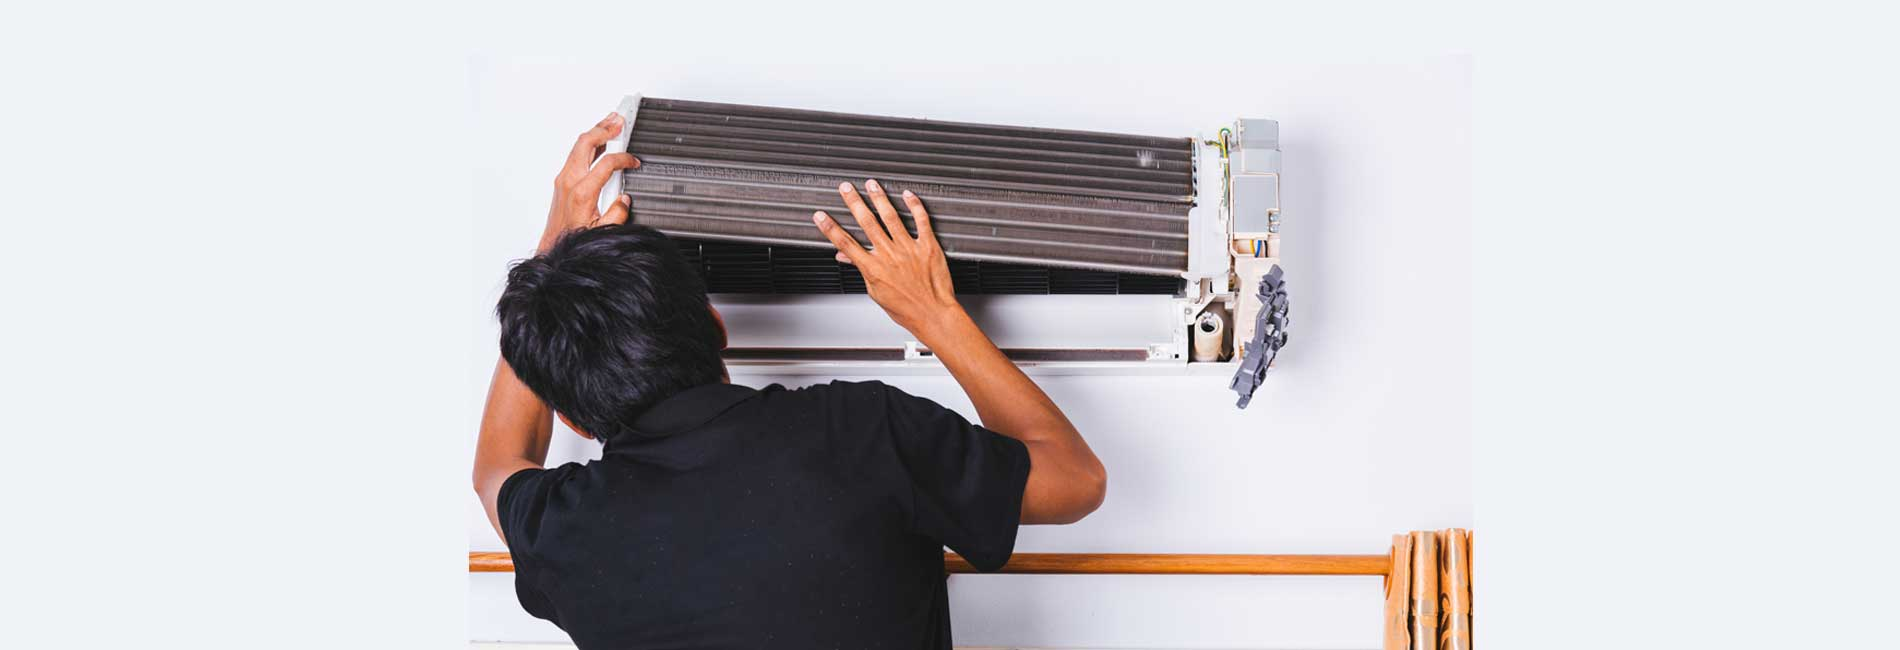 Air Condition Service in Pallikaranai